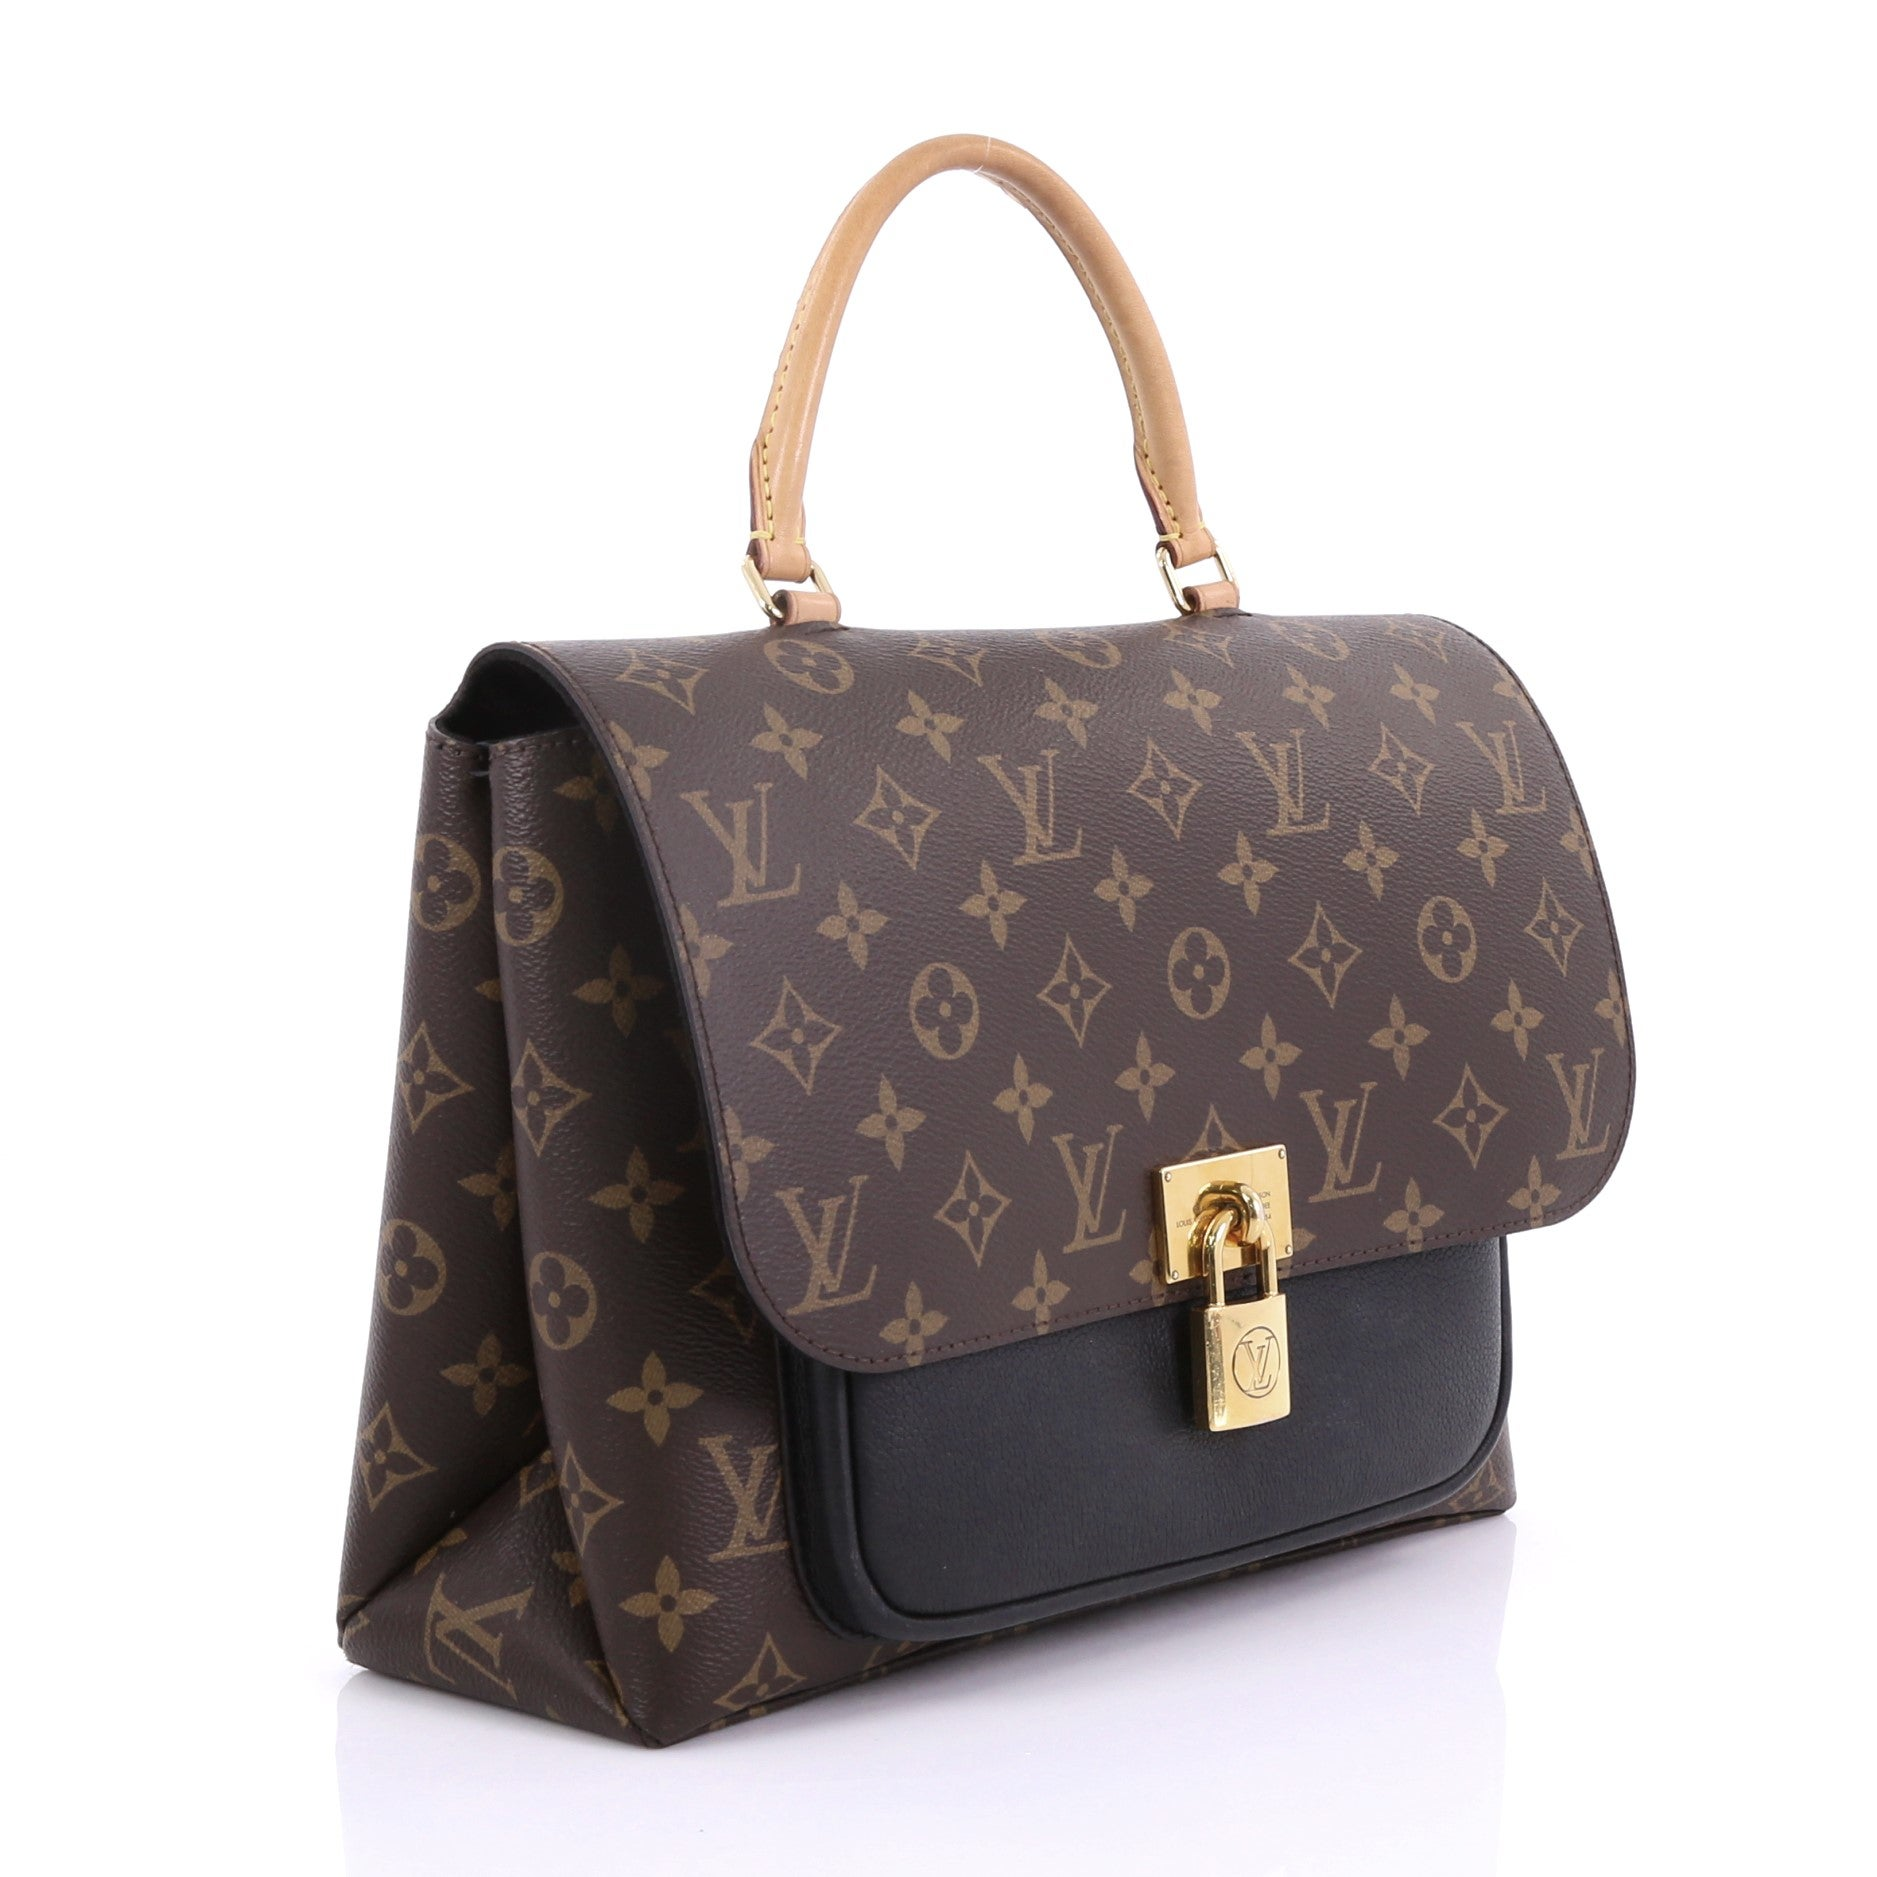 f846aaa7e2784 Louis Vuitton Marignan Handbag Monogram Canvas with Leather bei 1stdibs